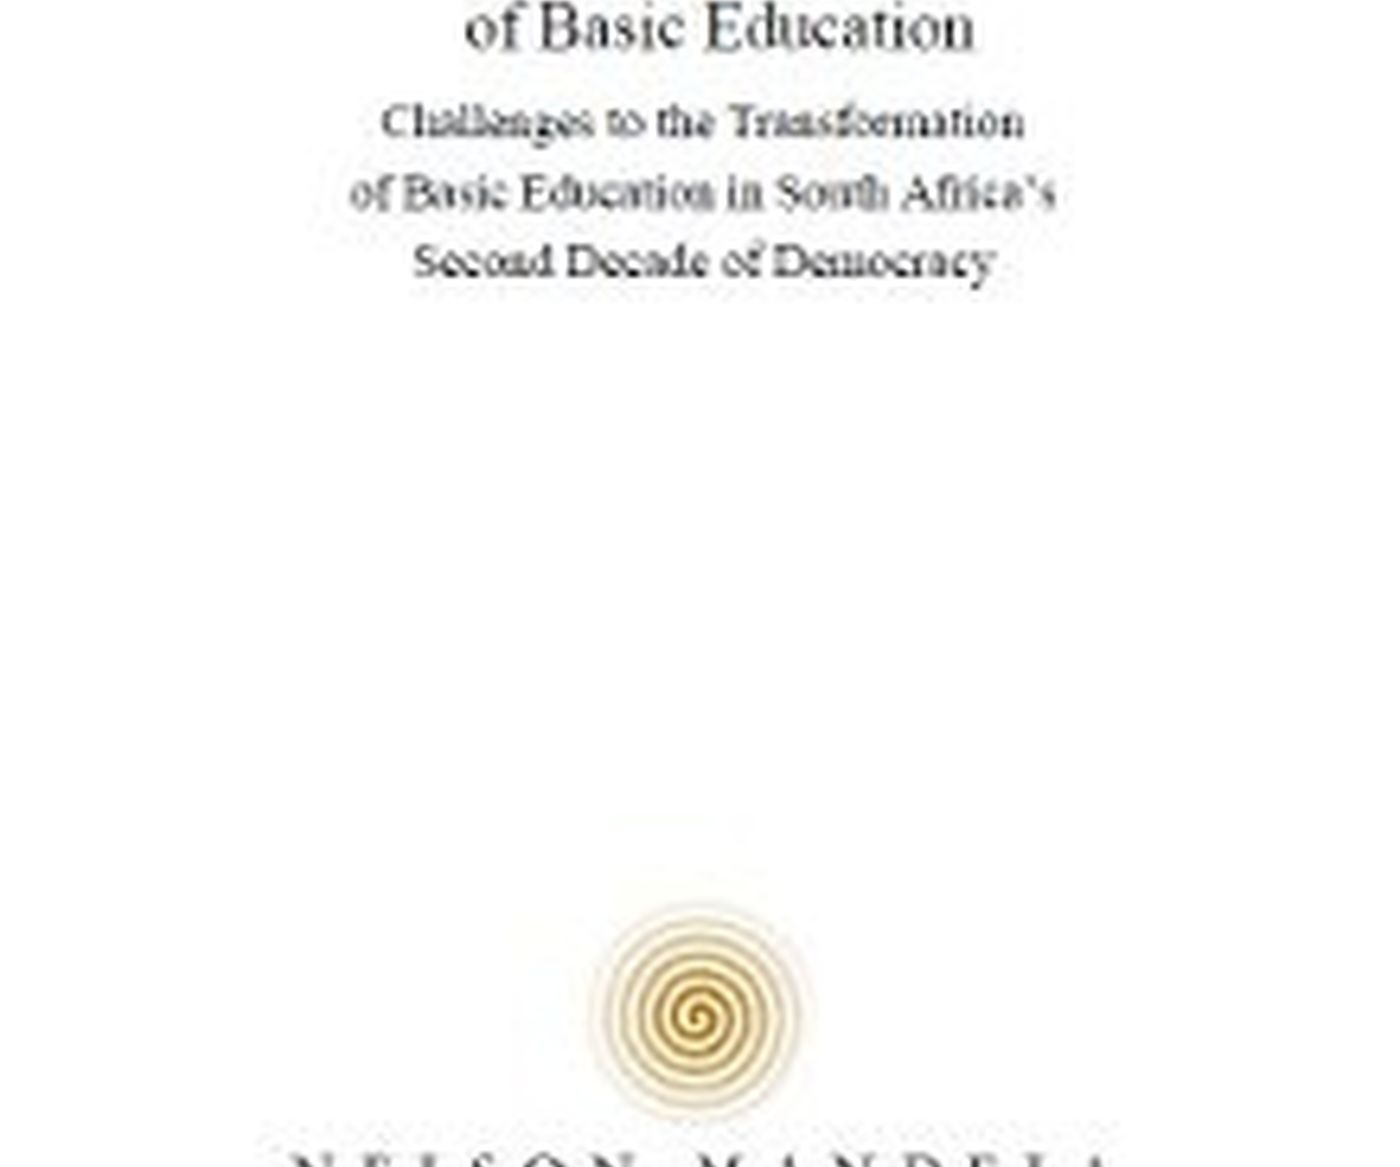 Reflections On Ten Years Of Basic Education